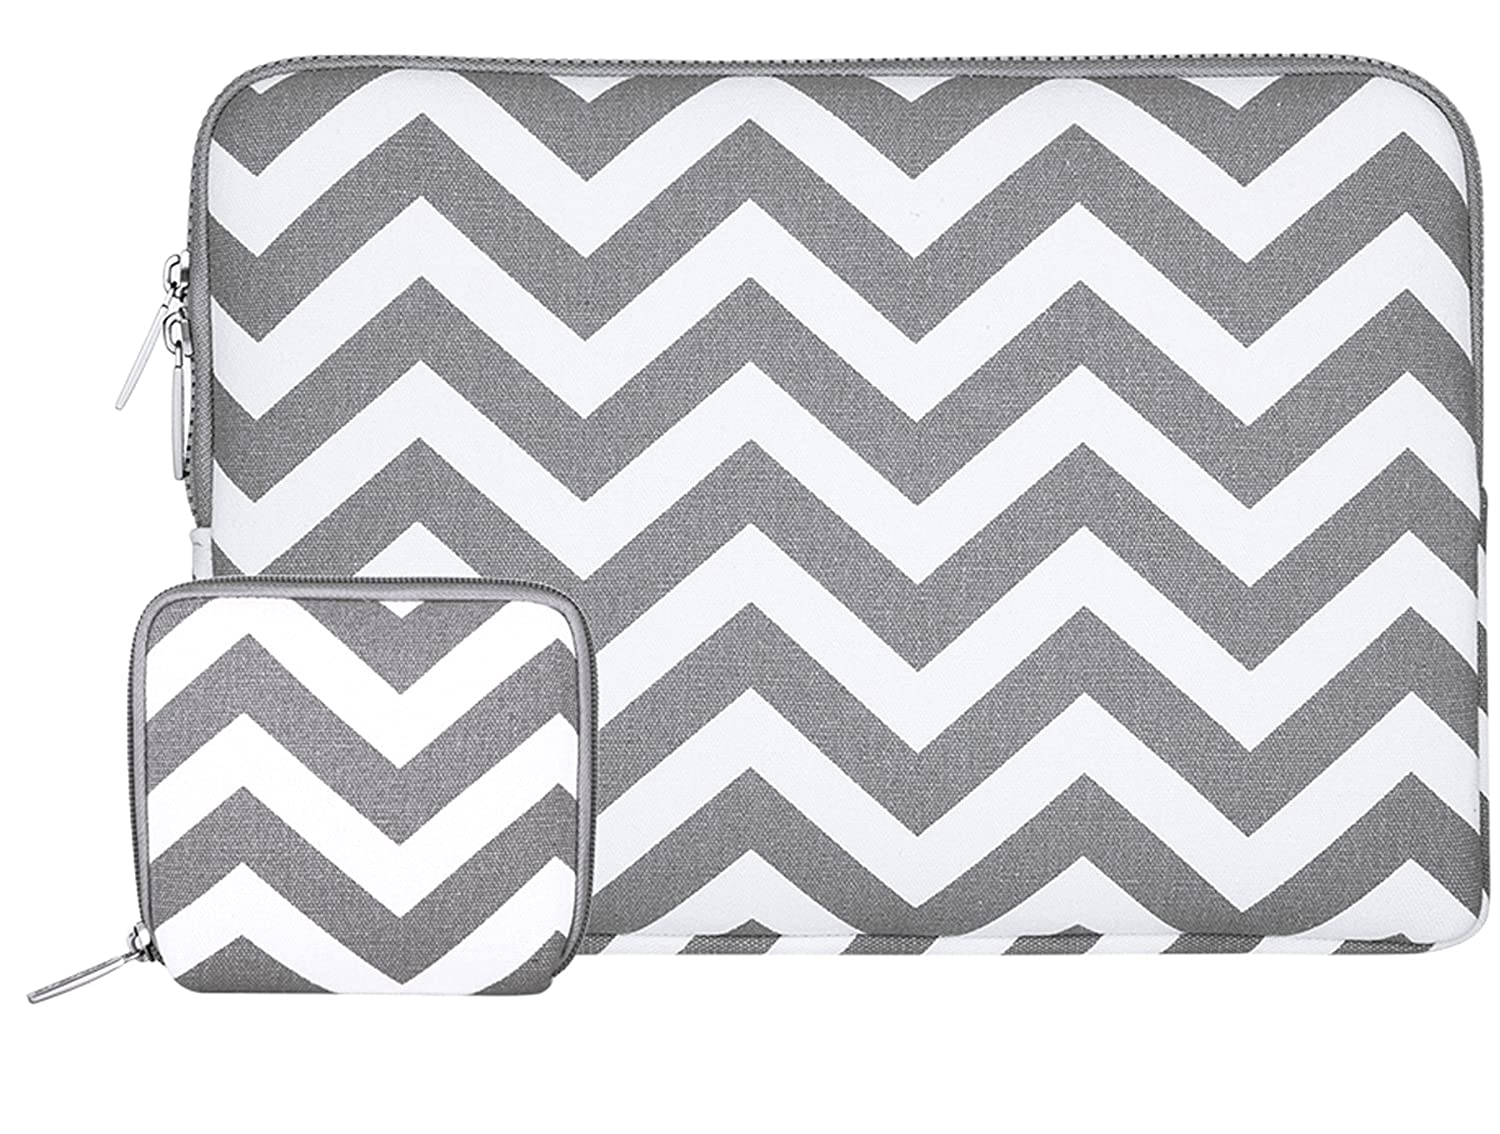 ddc726a290be MOSISO Laptop Sleeve Bag Compatible 13-13.3 Inch MacBook Pro, MacBook Air,  Notebook with Small Case, Chevron Style Canvas Protective Carrying Case ...